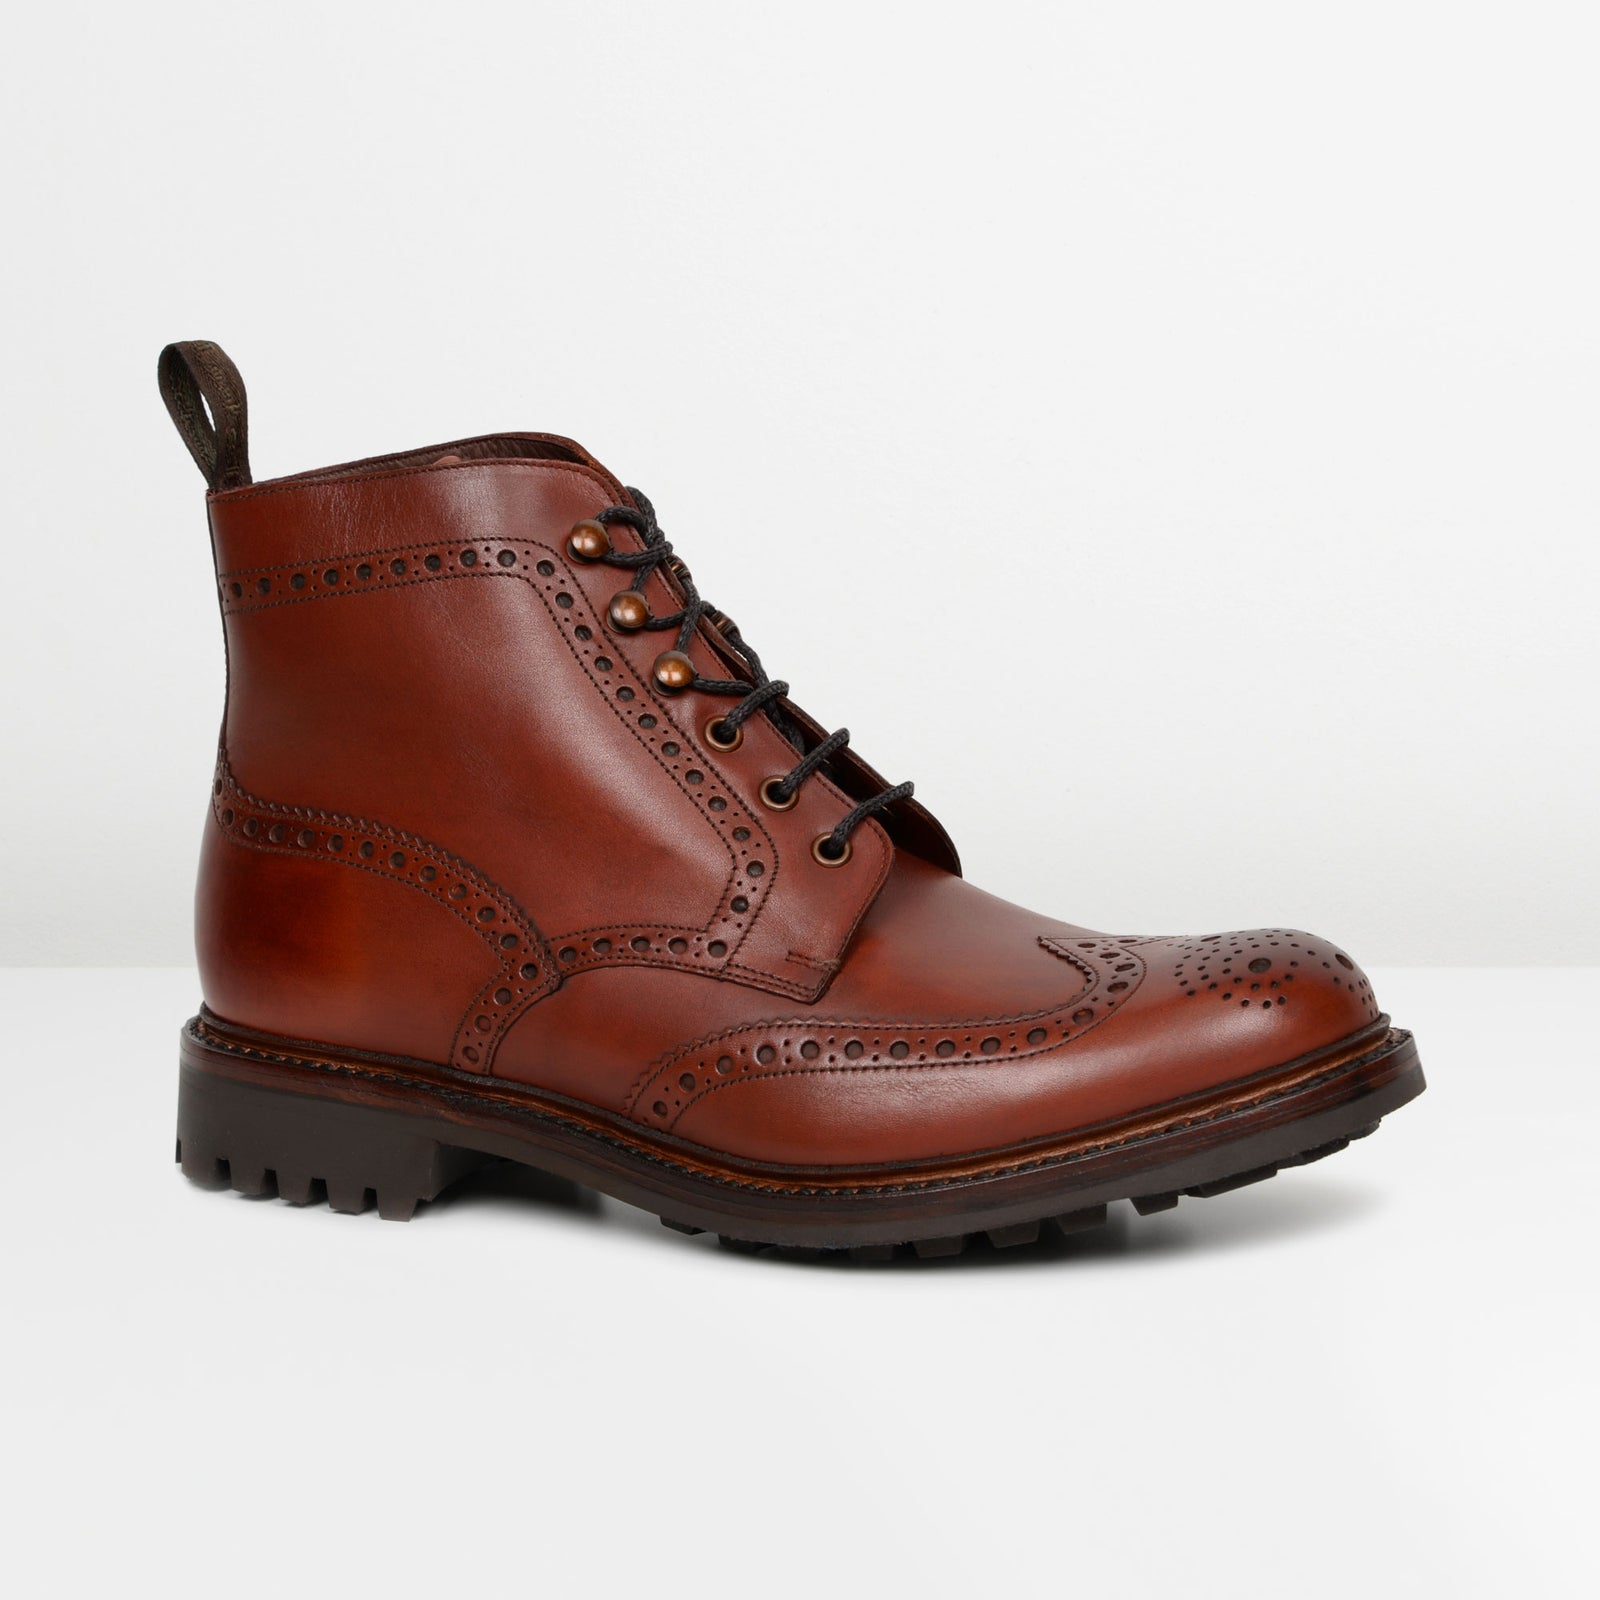 Conker Glendale Derby Brogue Boots